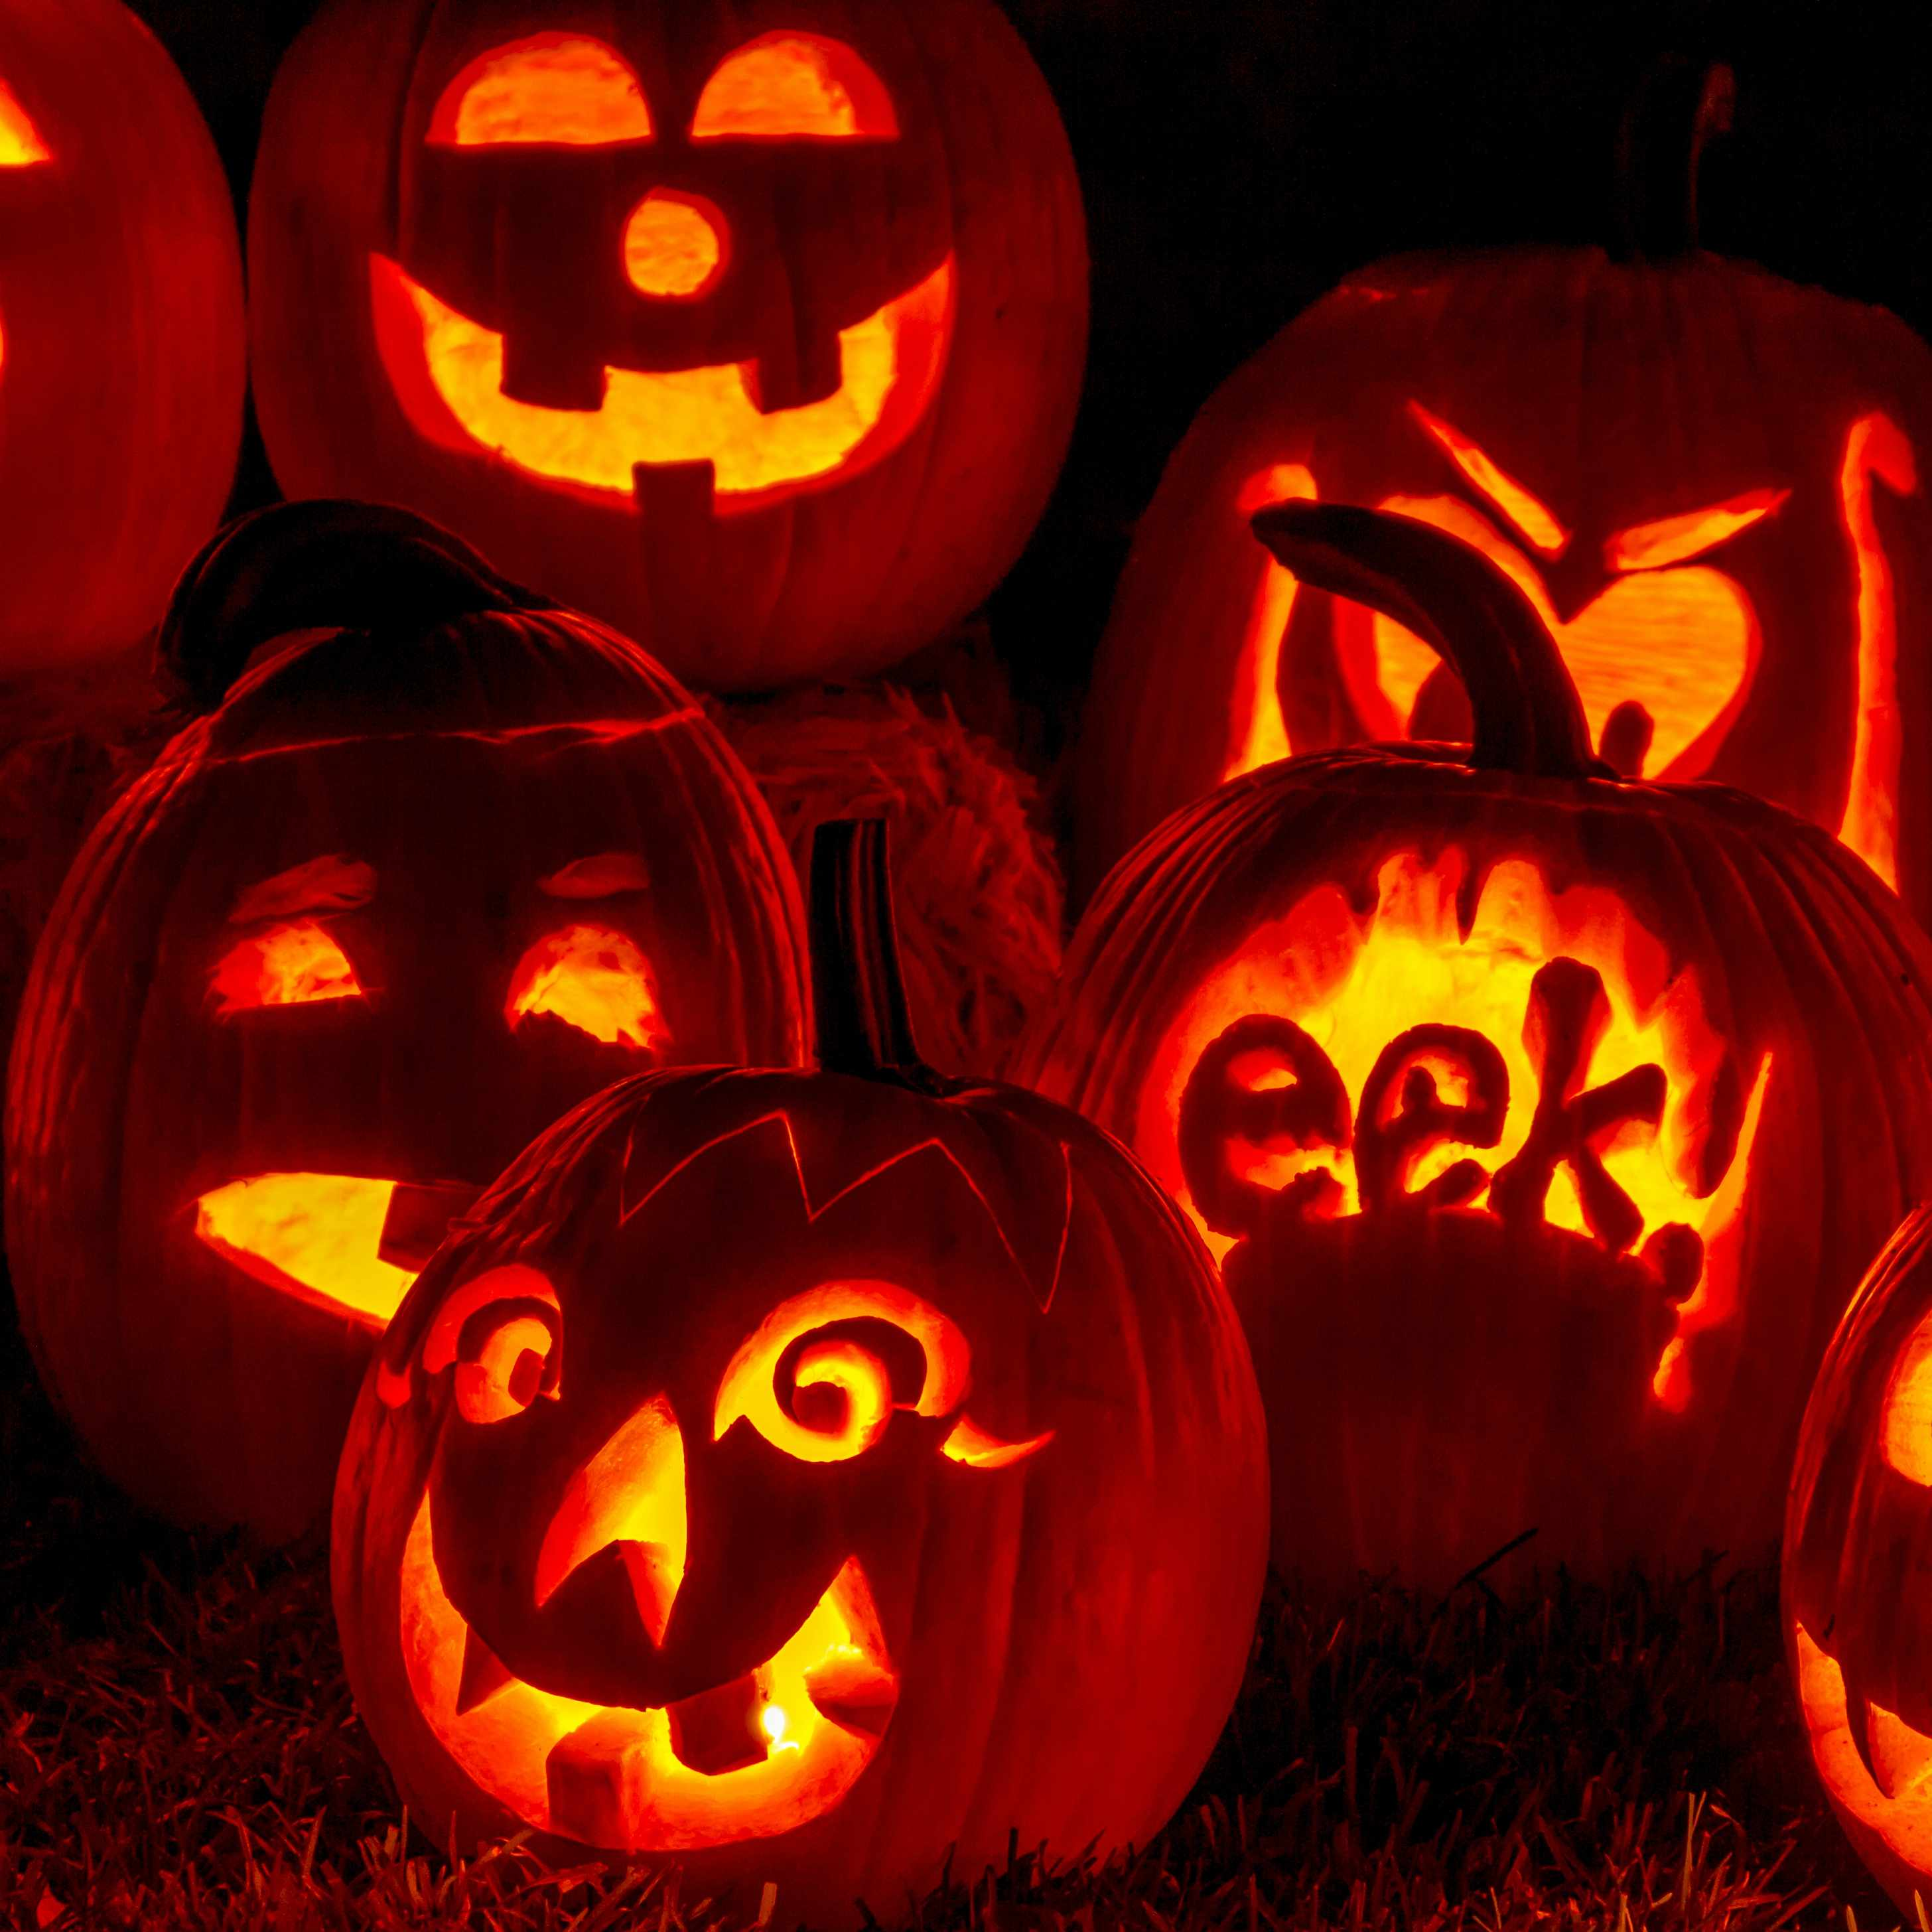 a group of carved out Halloween pumpkins as Jack-O-Lanterns